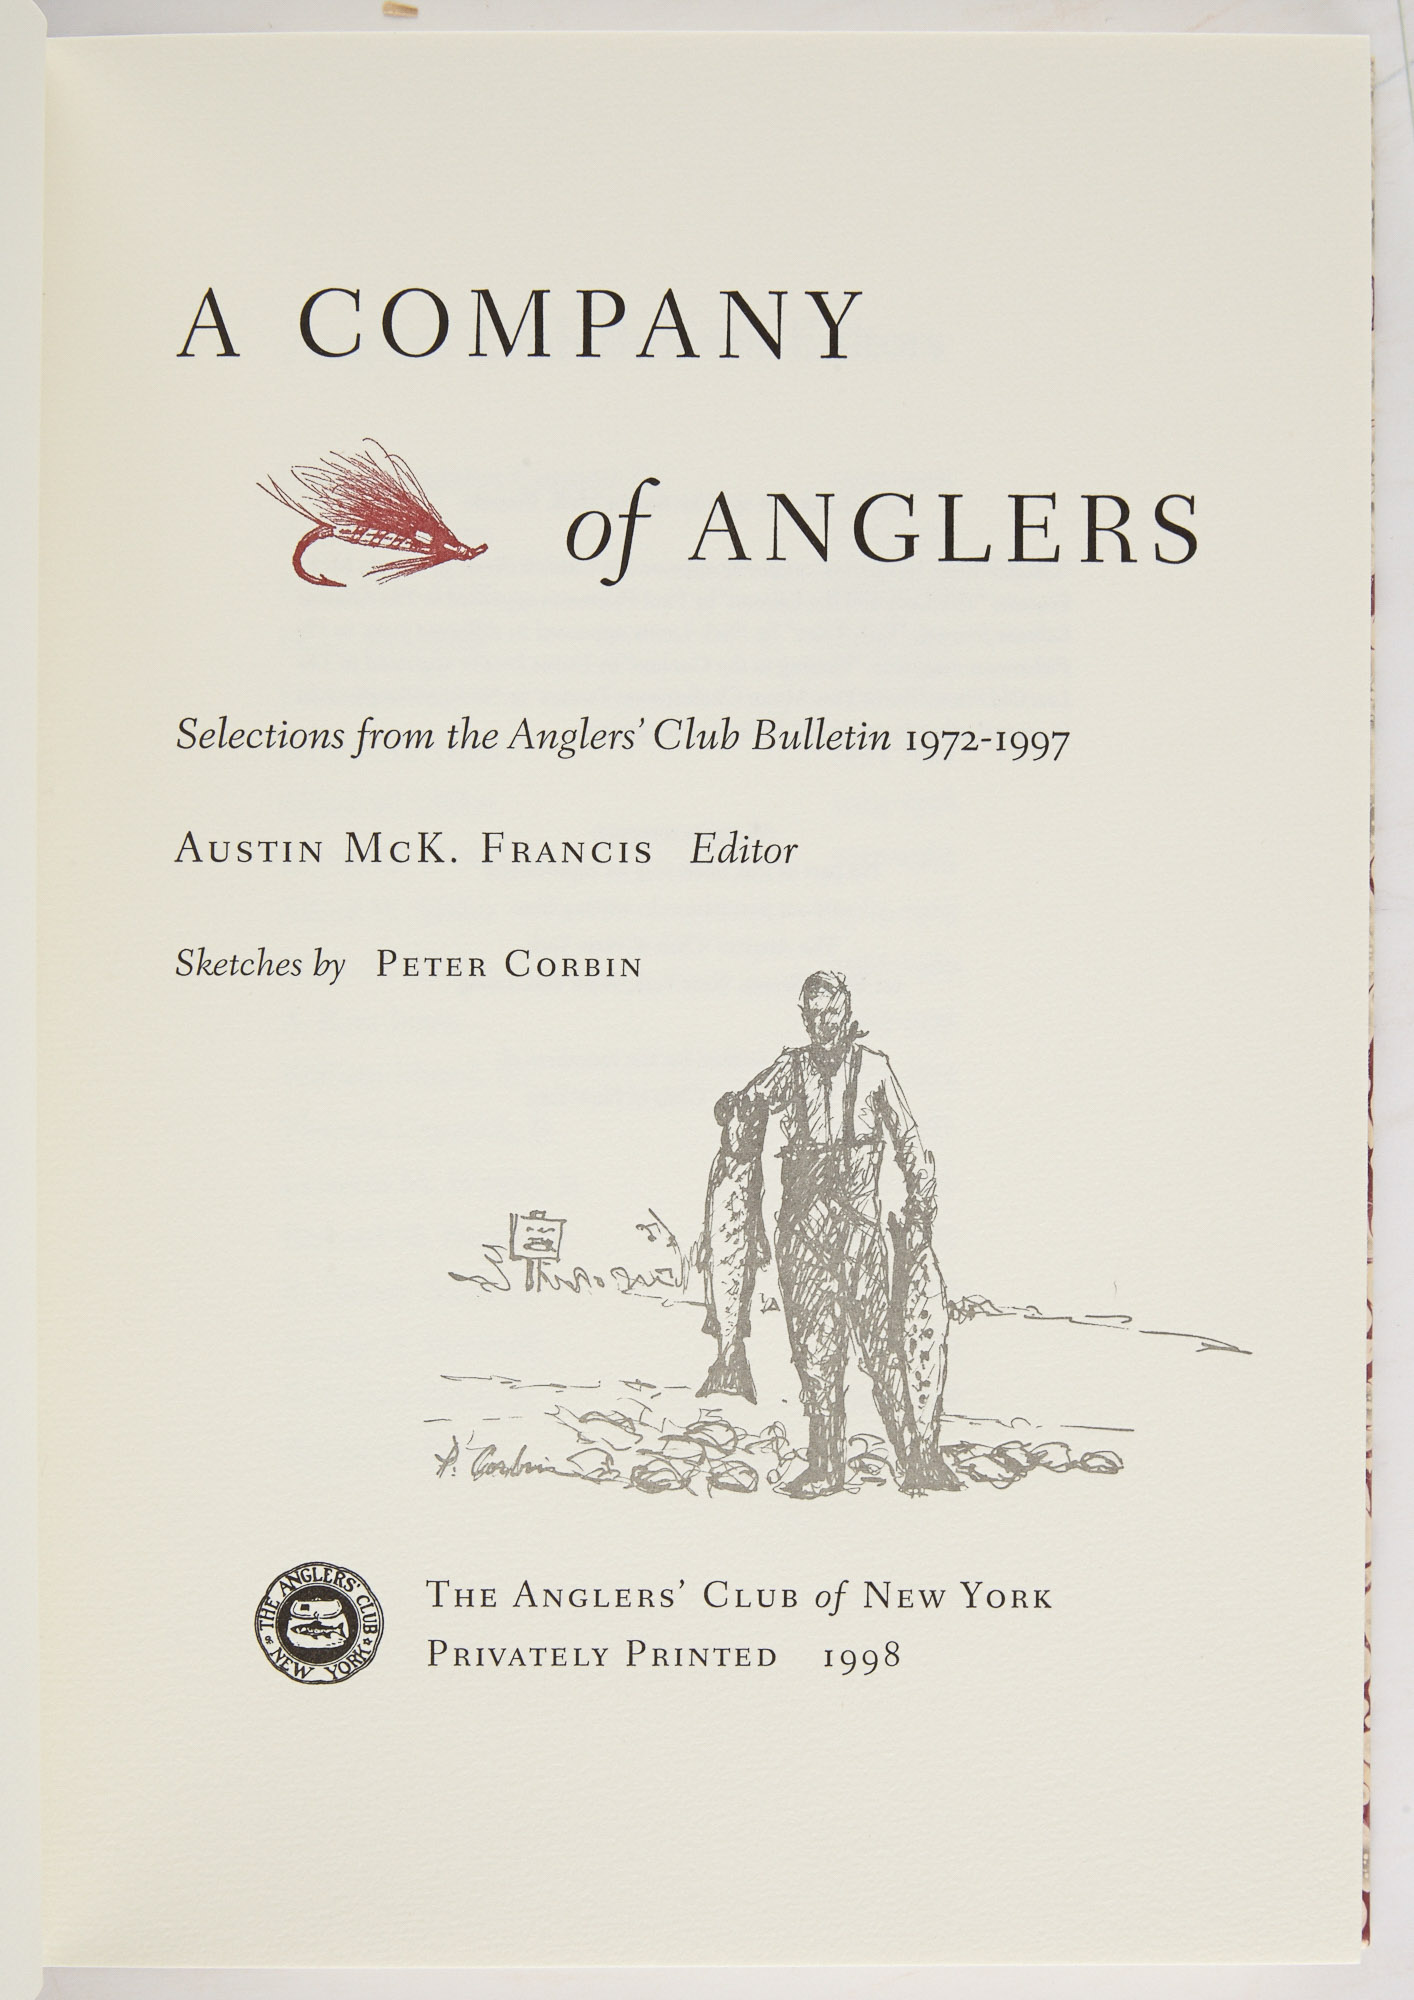 Lot image - [ANGLERS CLUB OF NEW YORK]  FRANCIS, AUSTIN McK., ed.  A Company of Anglers. Selections from the Anglers Club Bulletin 1972-1997.